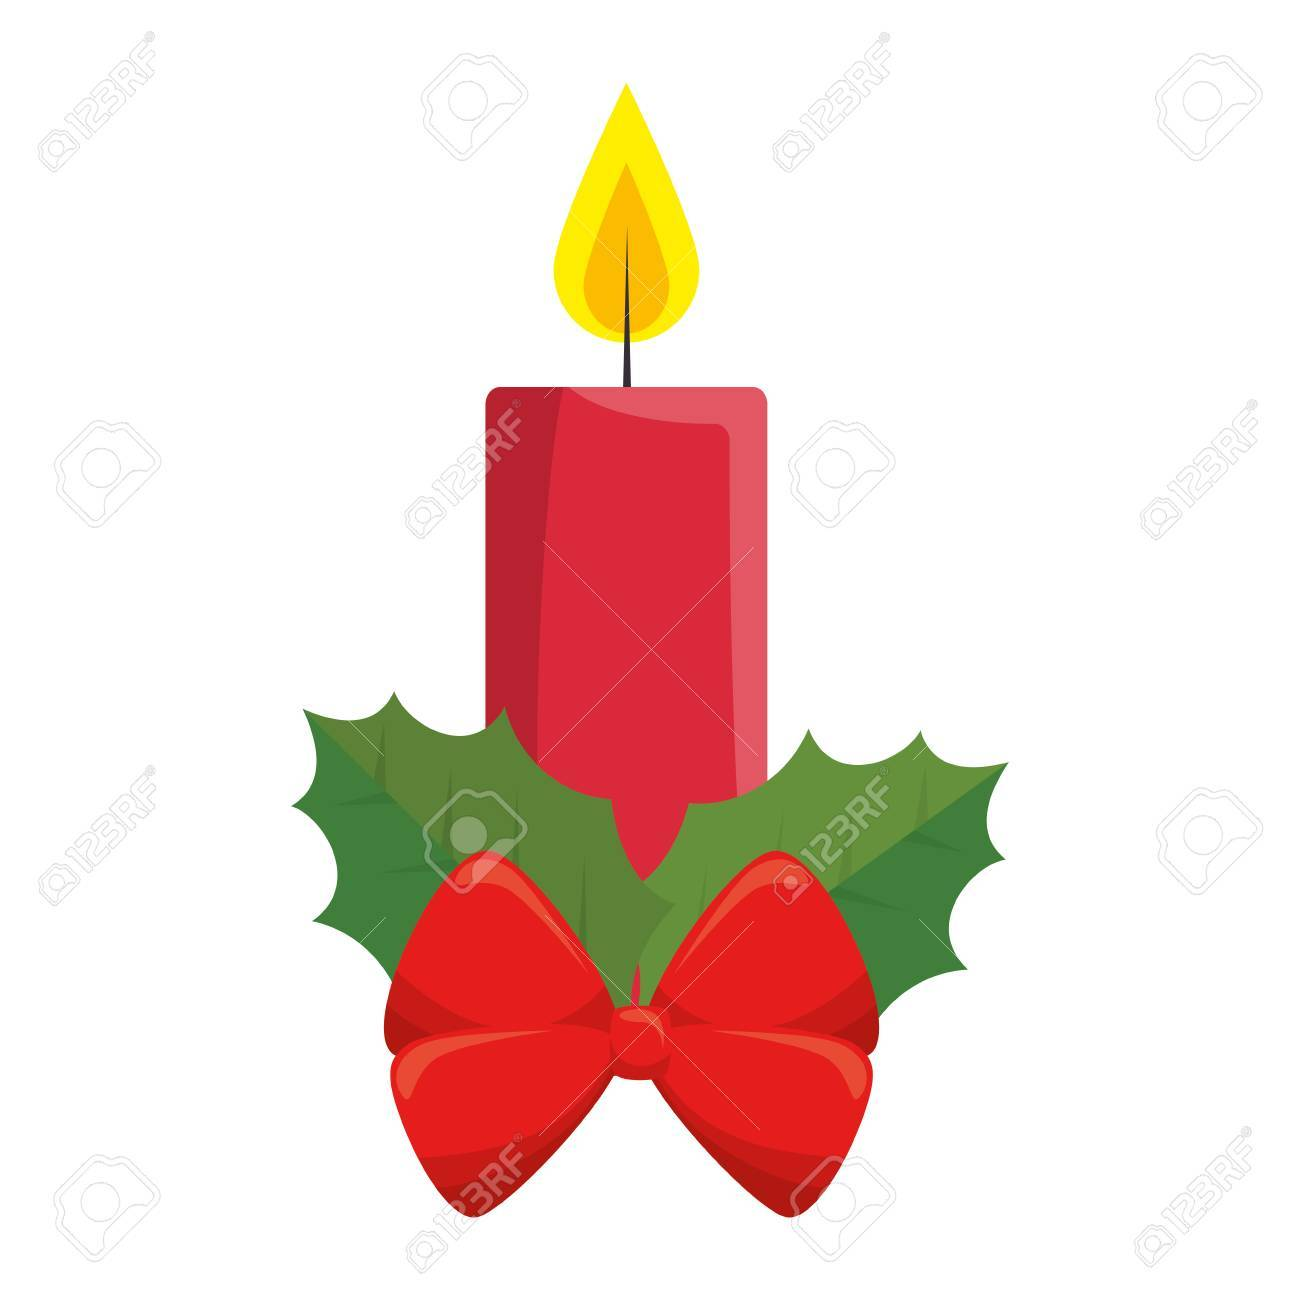 Decorative icon clipart png freeuse library Christmas candles decorative icon » Clipart Portal png freeuse library